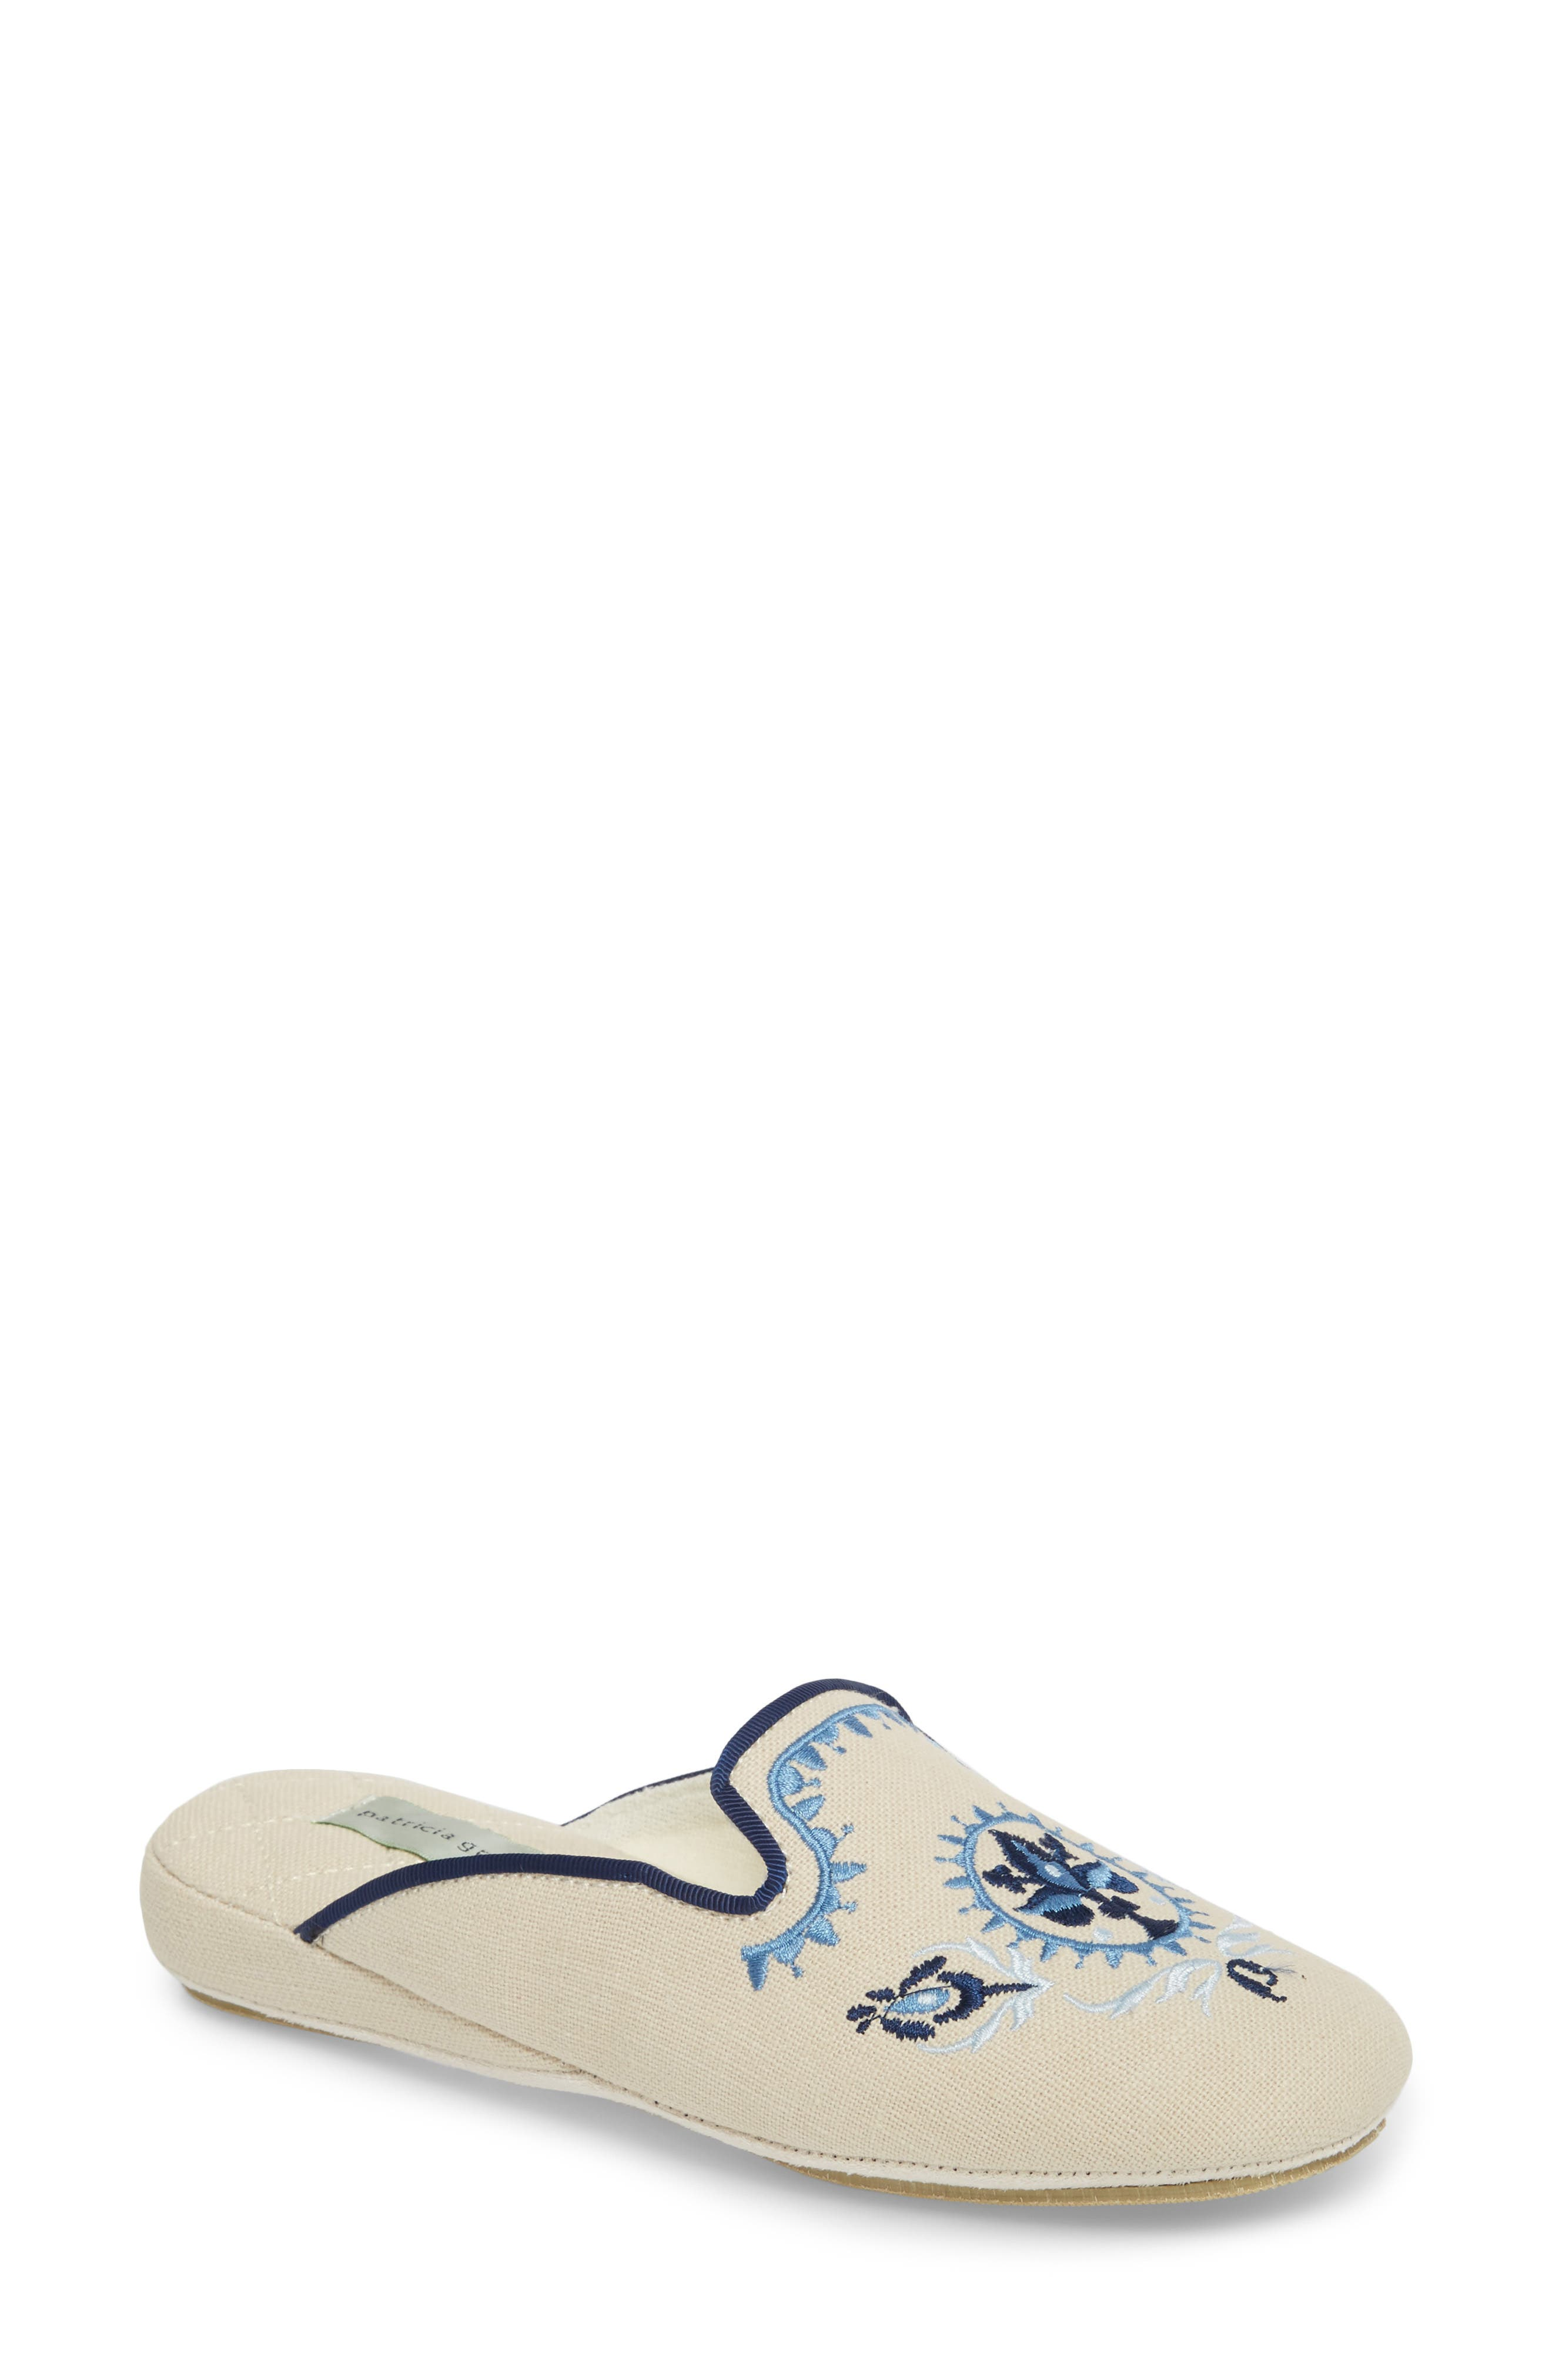 Rosa Embroidered Slipper,                             Main thumbnail 1, color,                             Blue Fabric